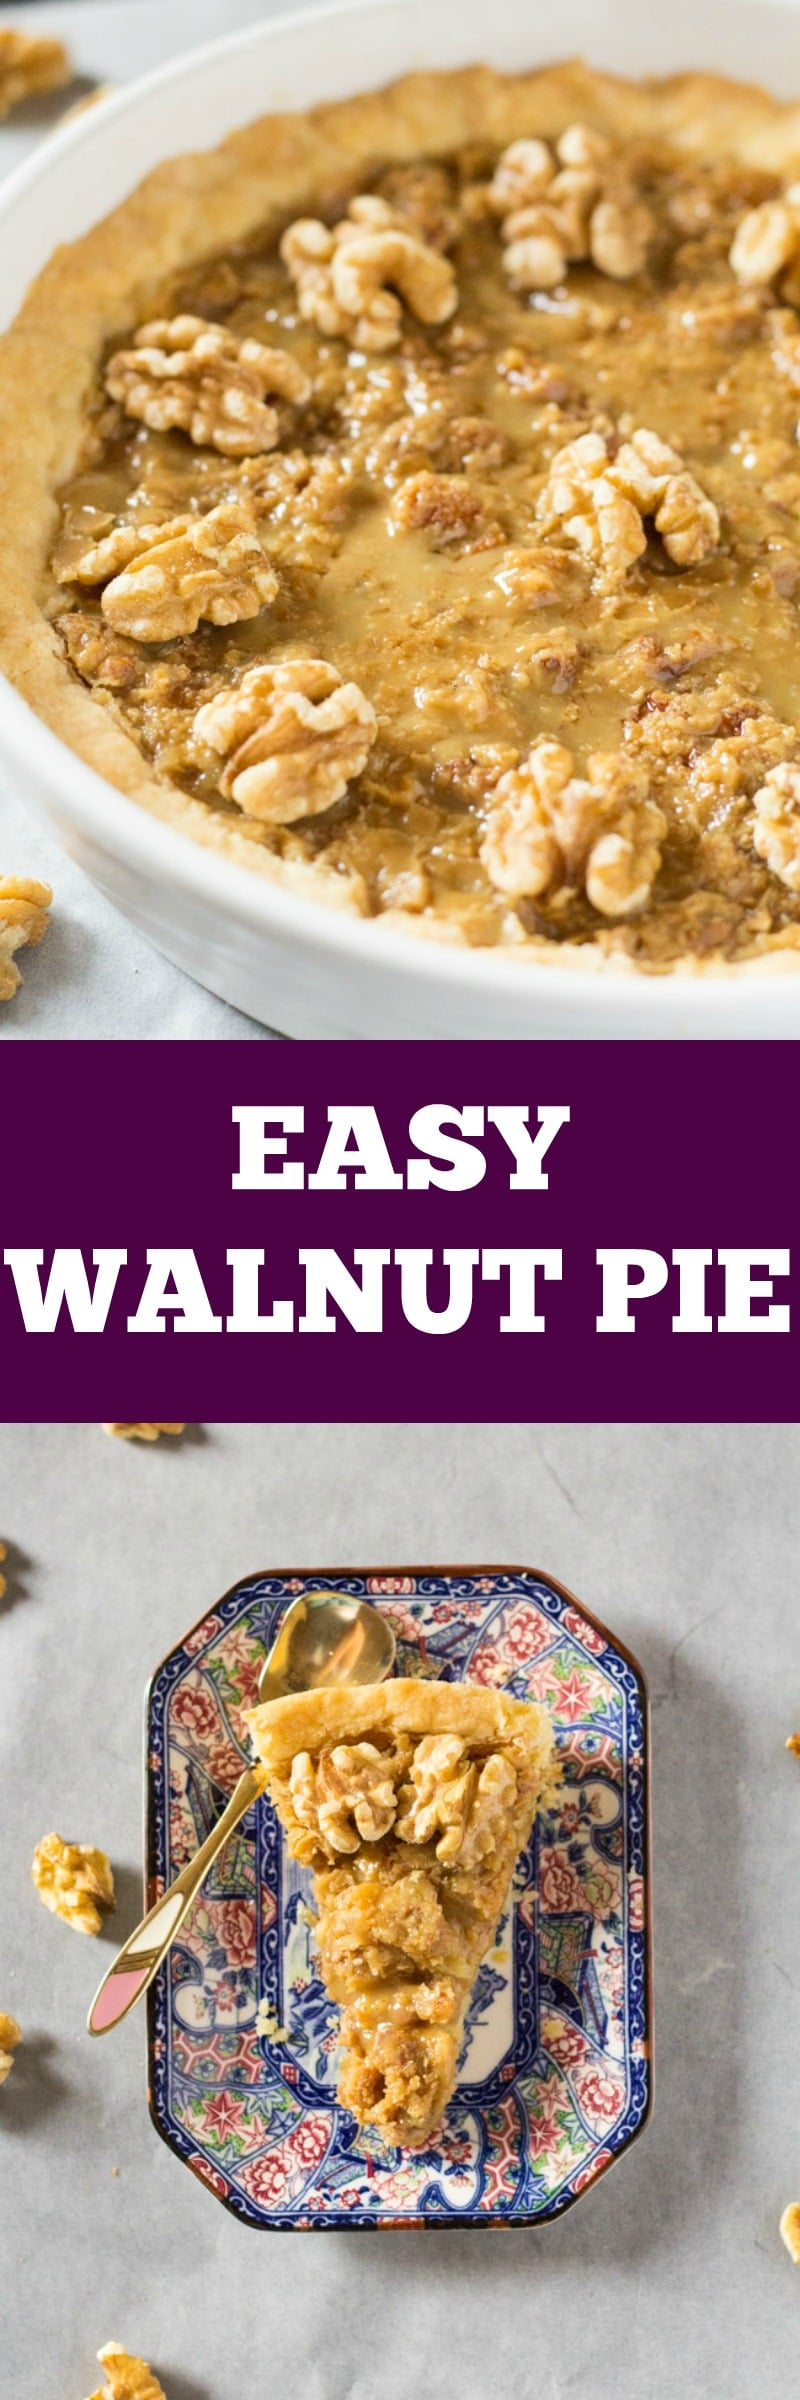 Easy Walnut Pie